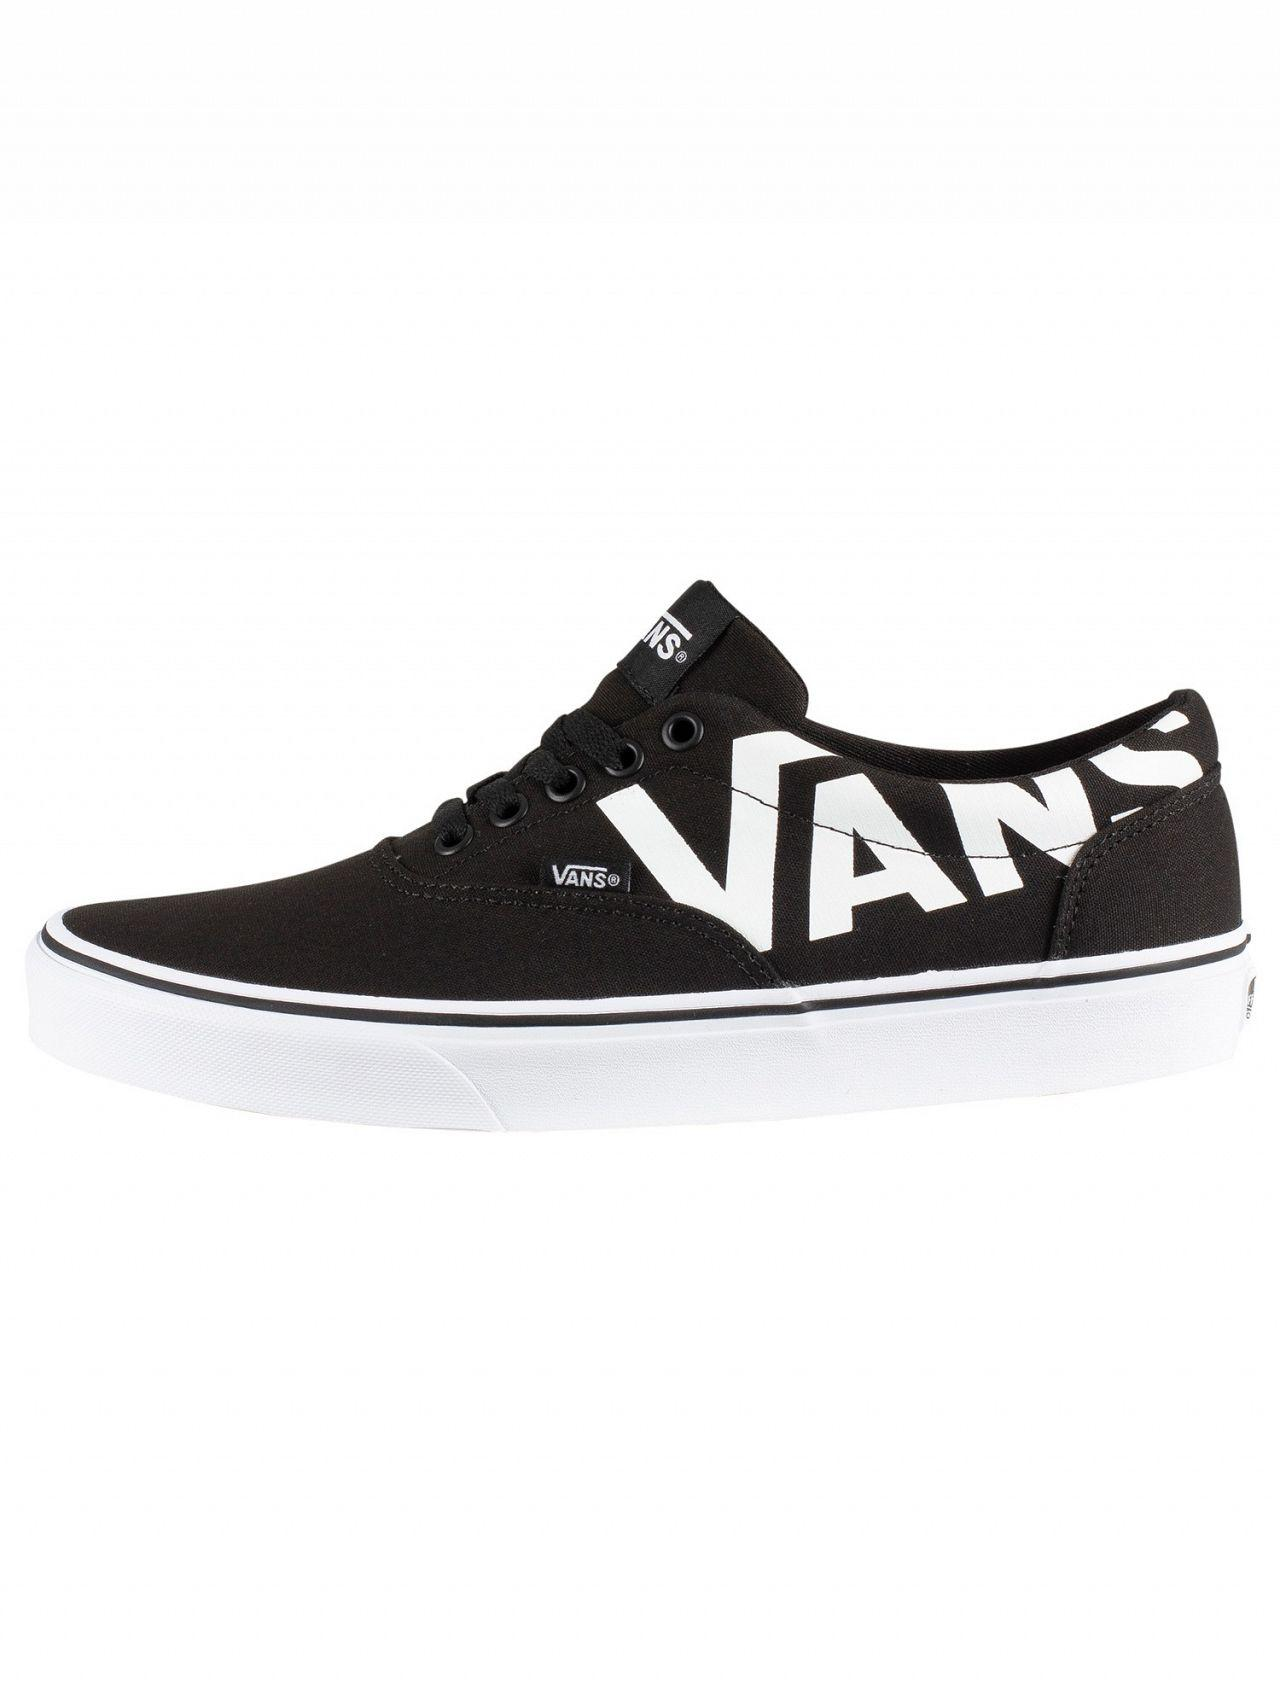 31393f56ac5bb3 Lyst - Vans Black white Doheny Big Logo Trainers in Black for Men